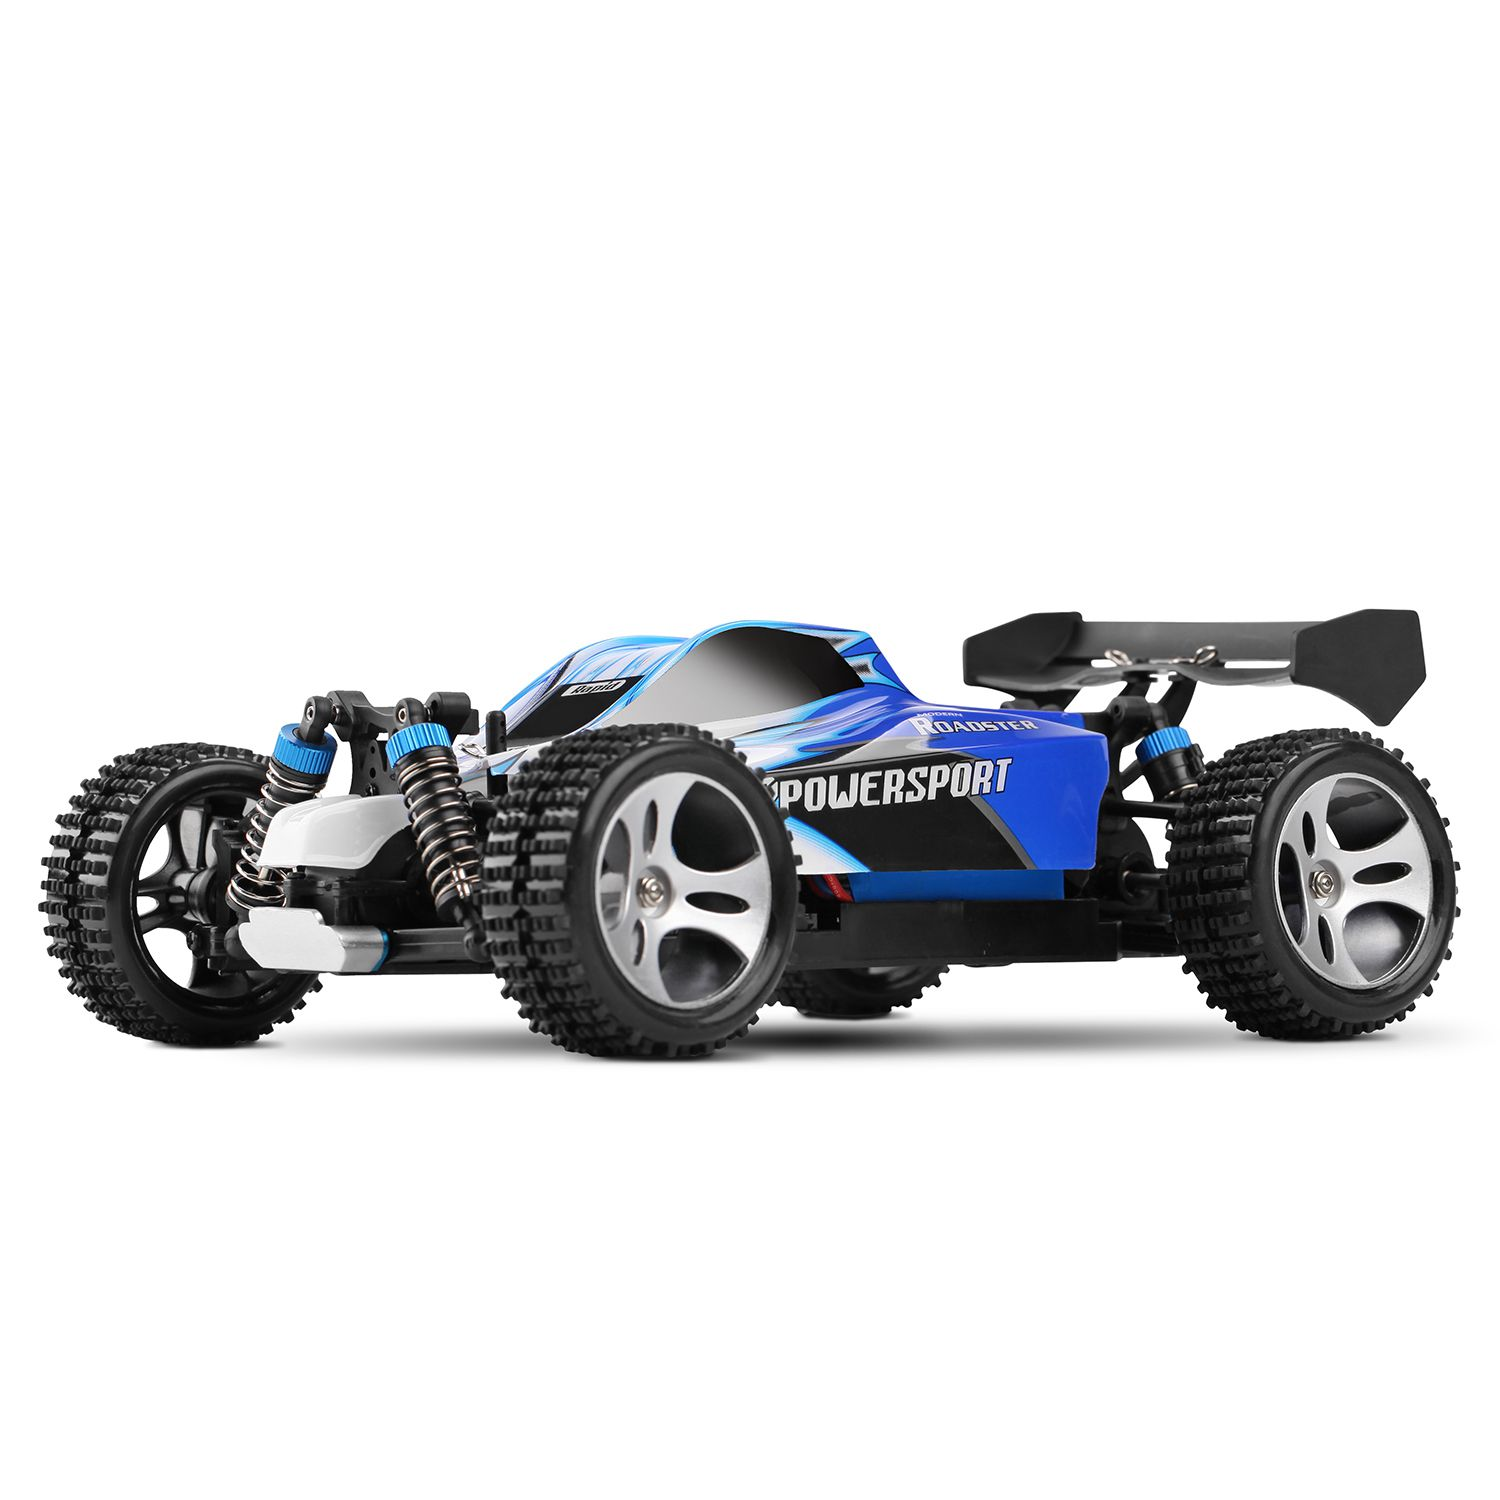 2018 New Wltoys A959 RC Car 1:18 Scale 2.4G 4WD RTR Off-Road Buggy High Speed Racing Car Remote Control Truck 4 wheel Climber2018 New Wltoys A959 RC Car 1:18 Scale 2.4G 4WD RTR Off-Road Buggy High Speed Racing Car Remote Control Truck 4 wheel Climber